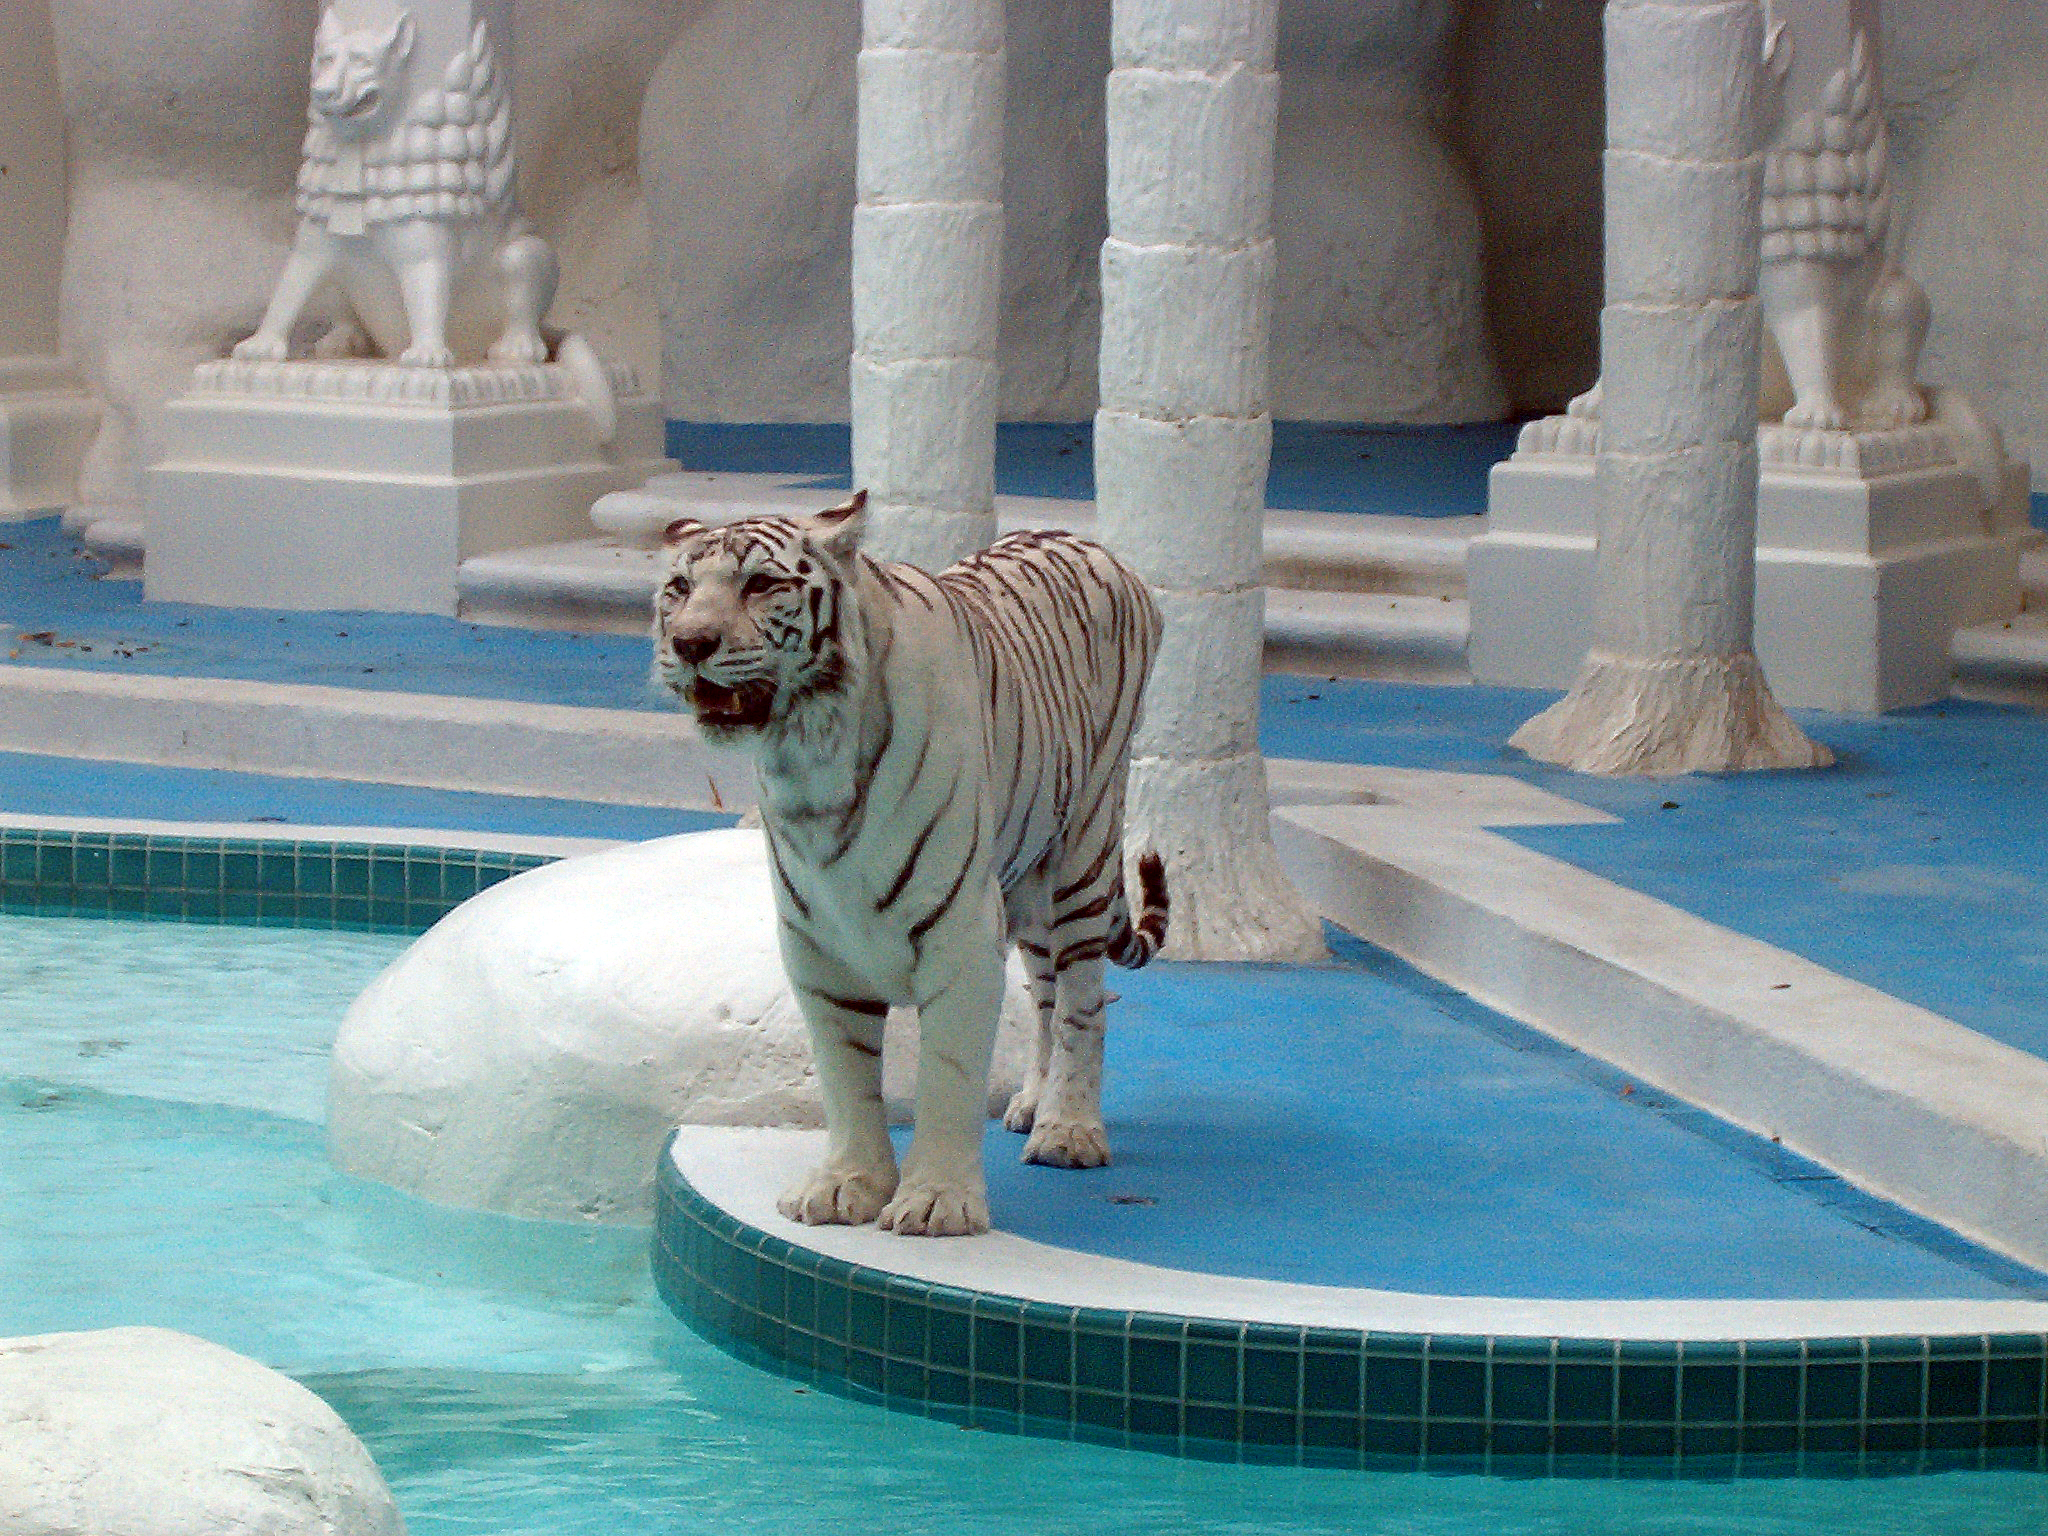 mirage casino white tigers